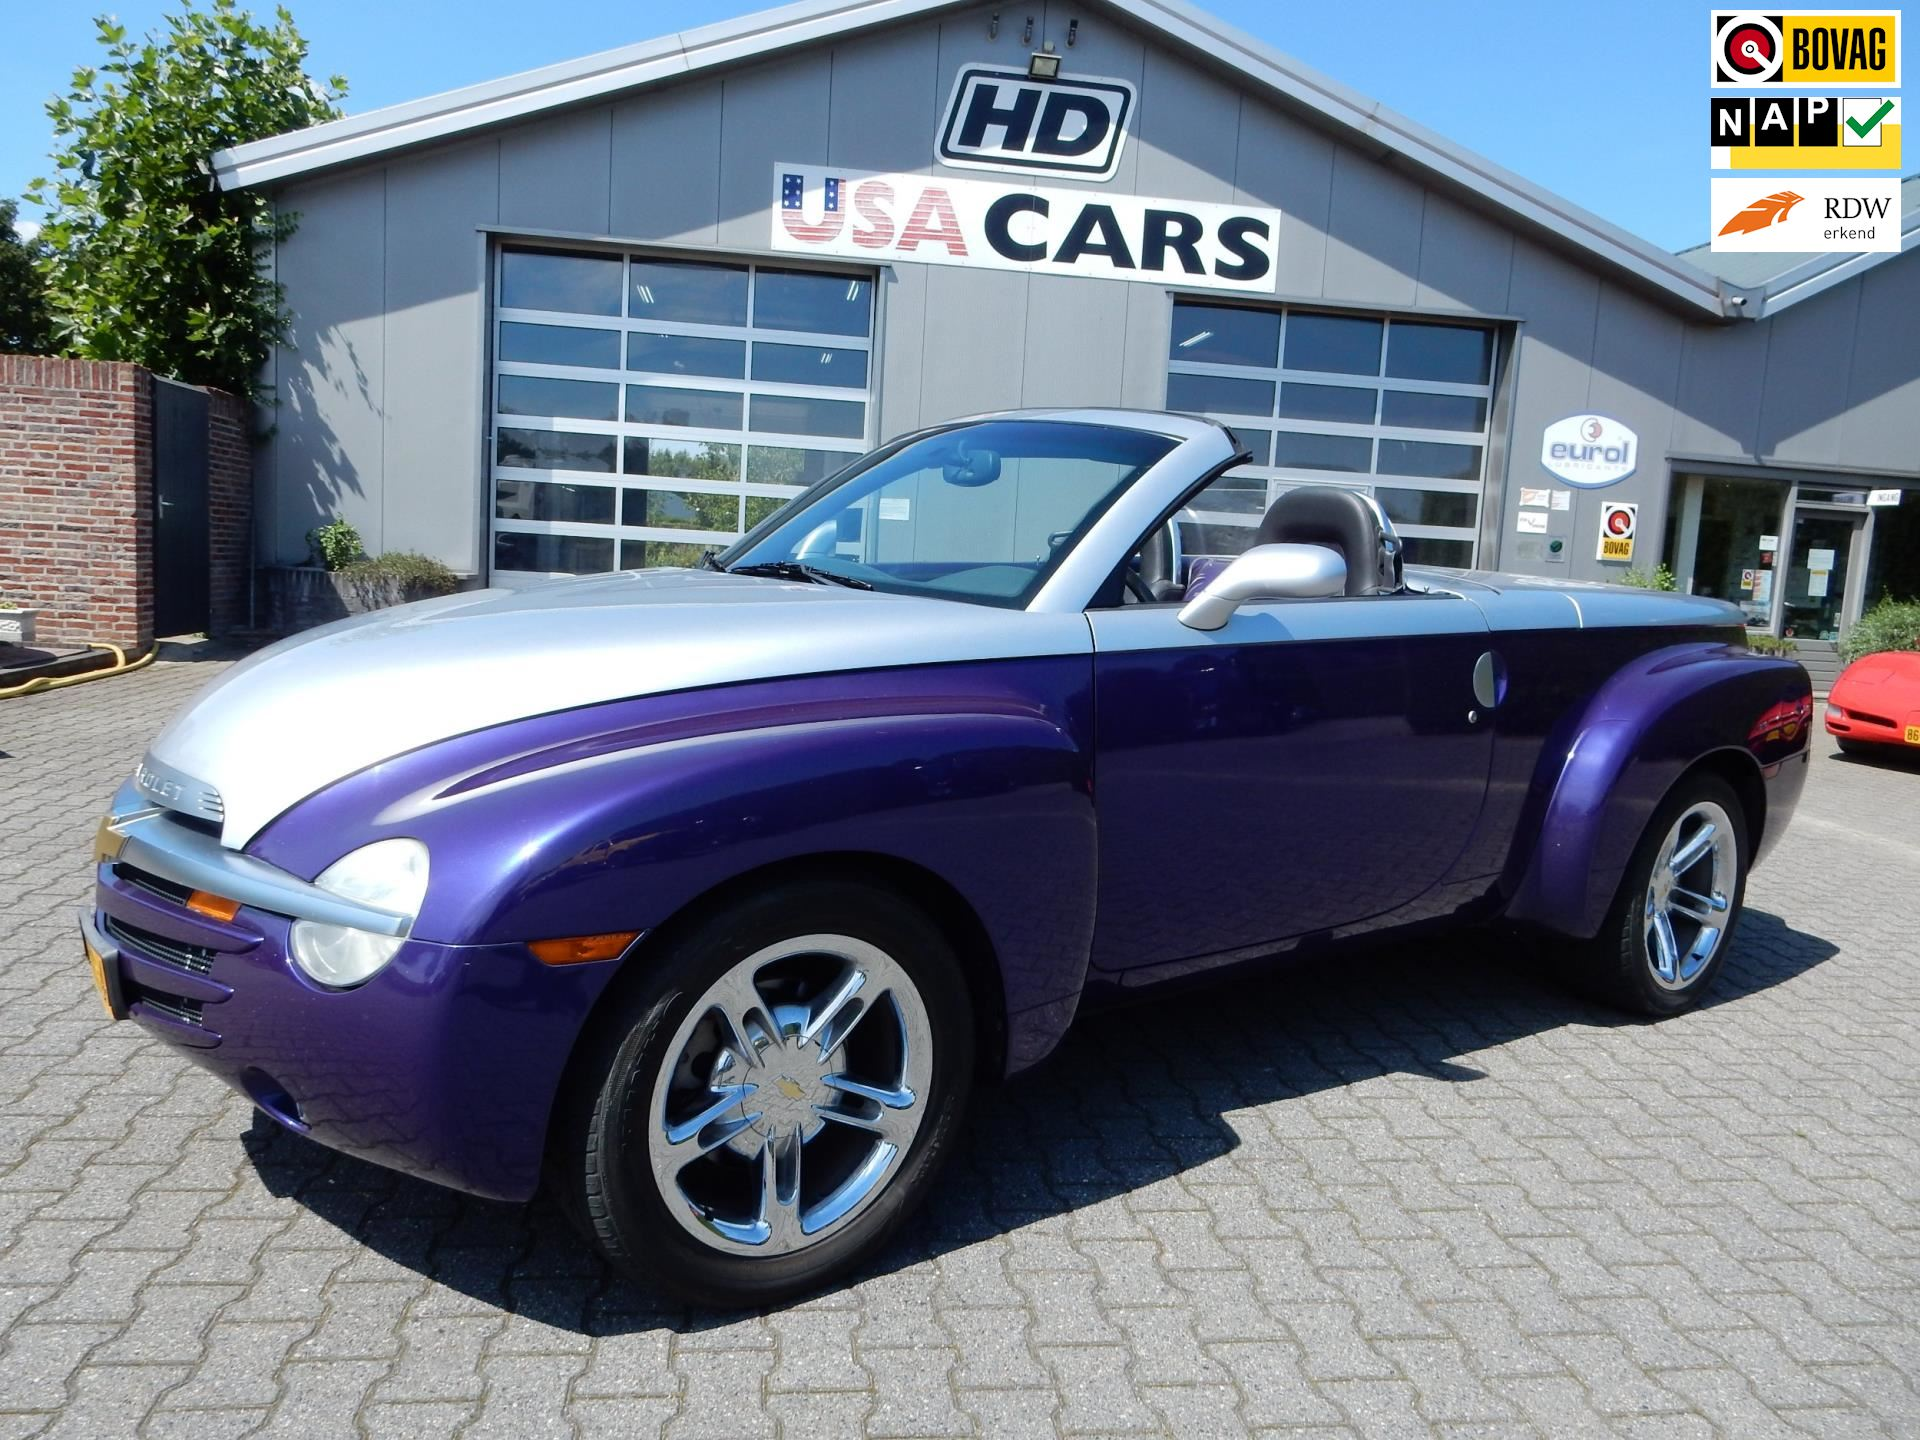 Chevrolet SSR Super Sport Roadster V8 Aut. grijs kent. occasion - HD USA CARS